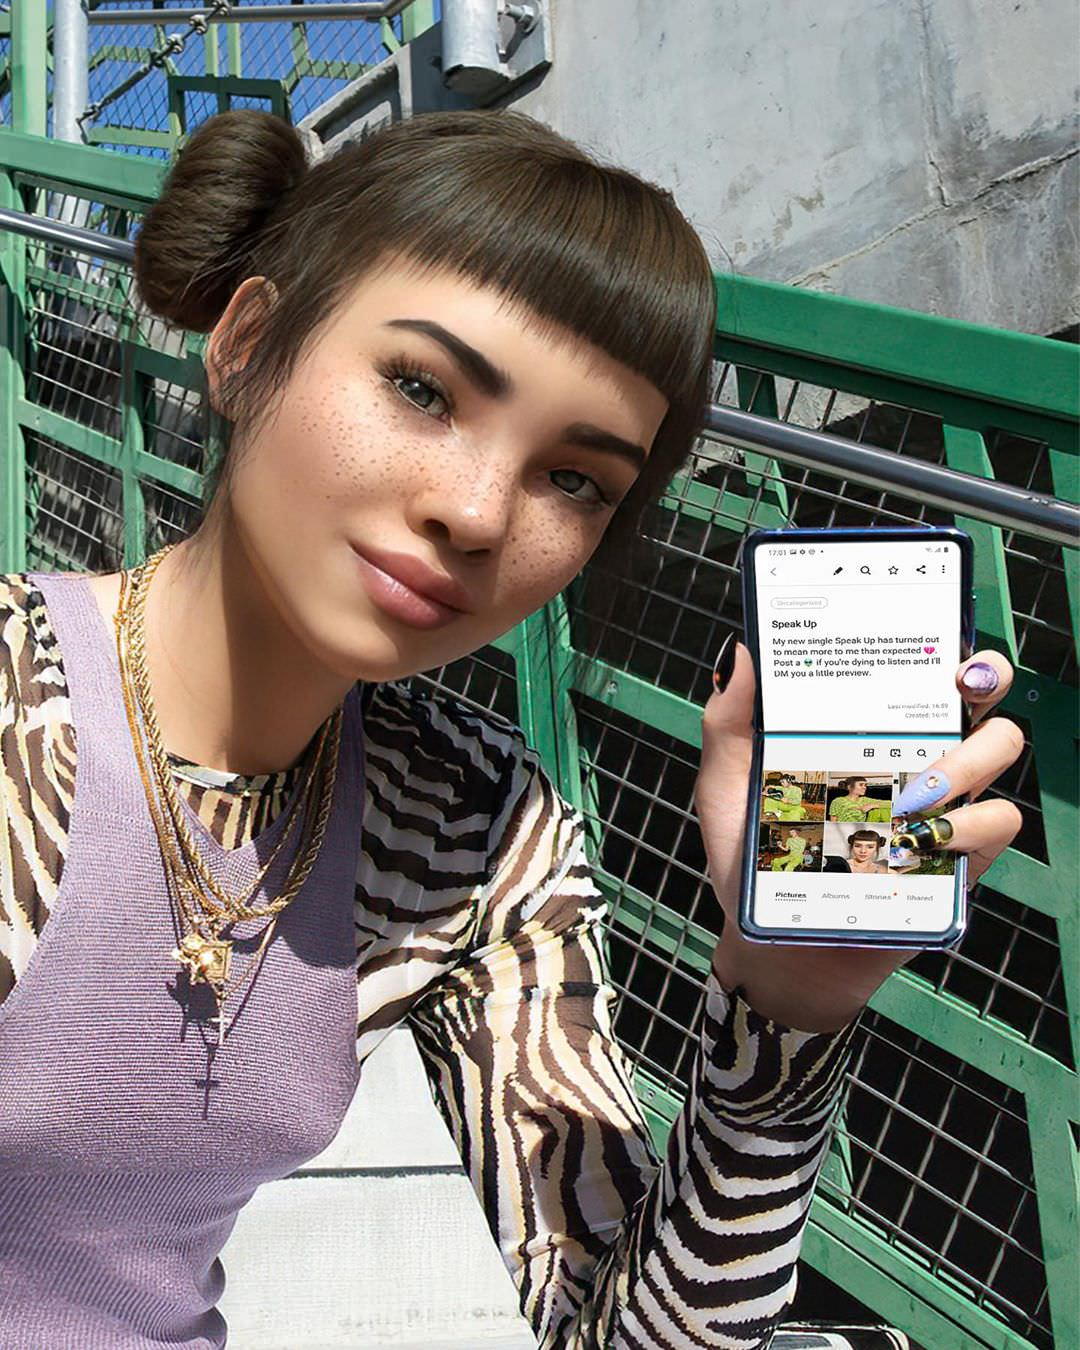 Miquela Sousa Virtual Influencer selling phones